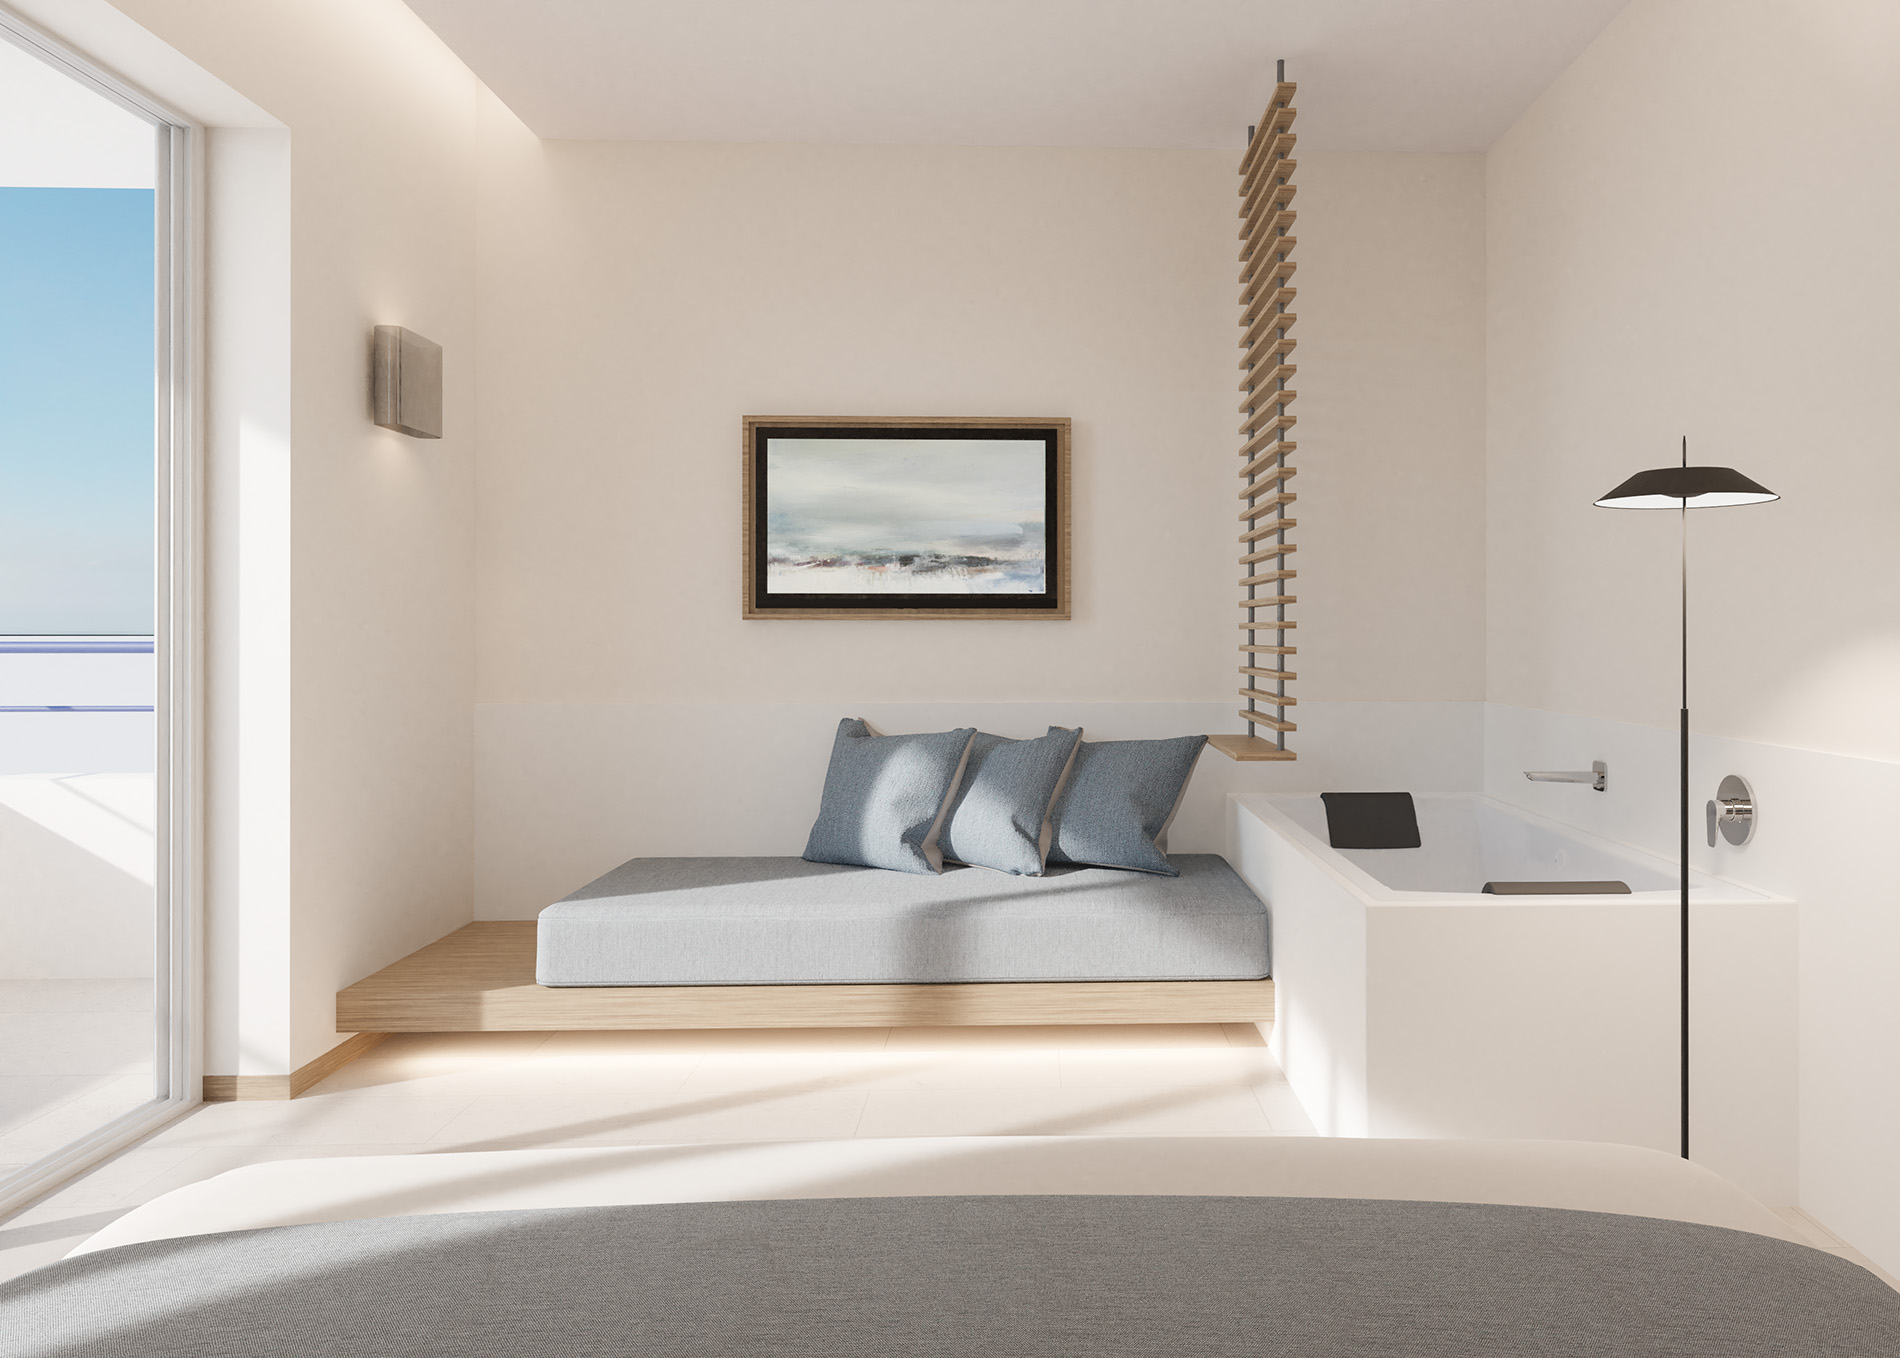 Arquitectos en Barcelona Rardo Architects in Barcelona and Sitges